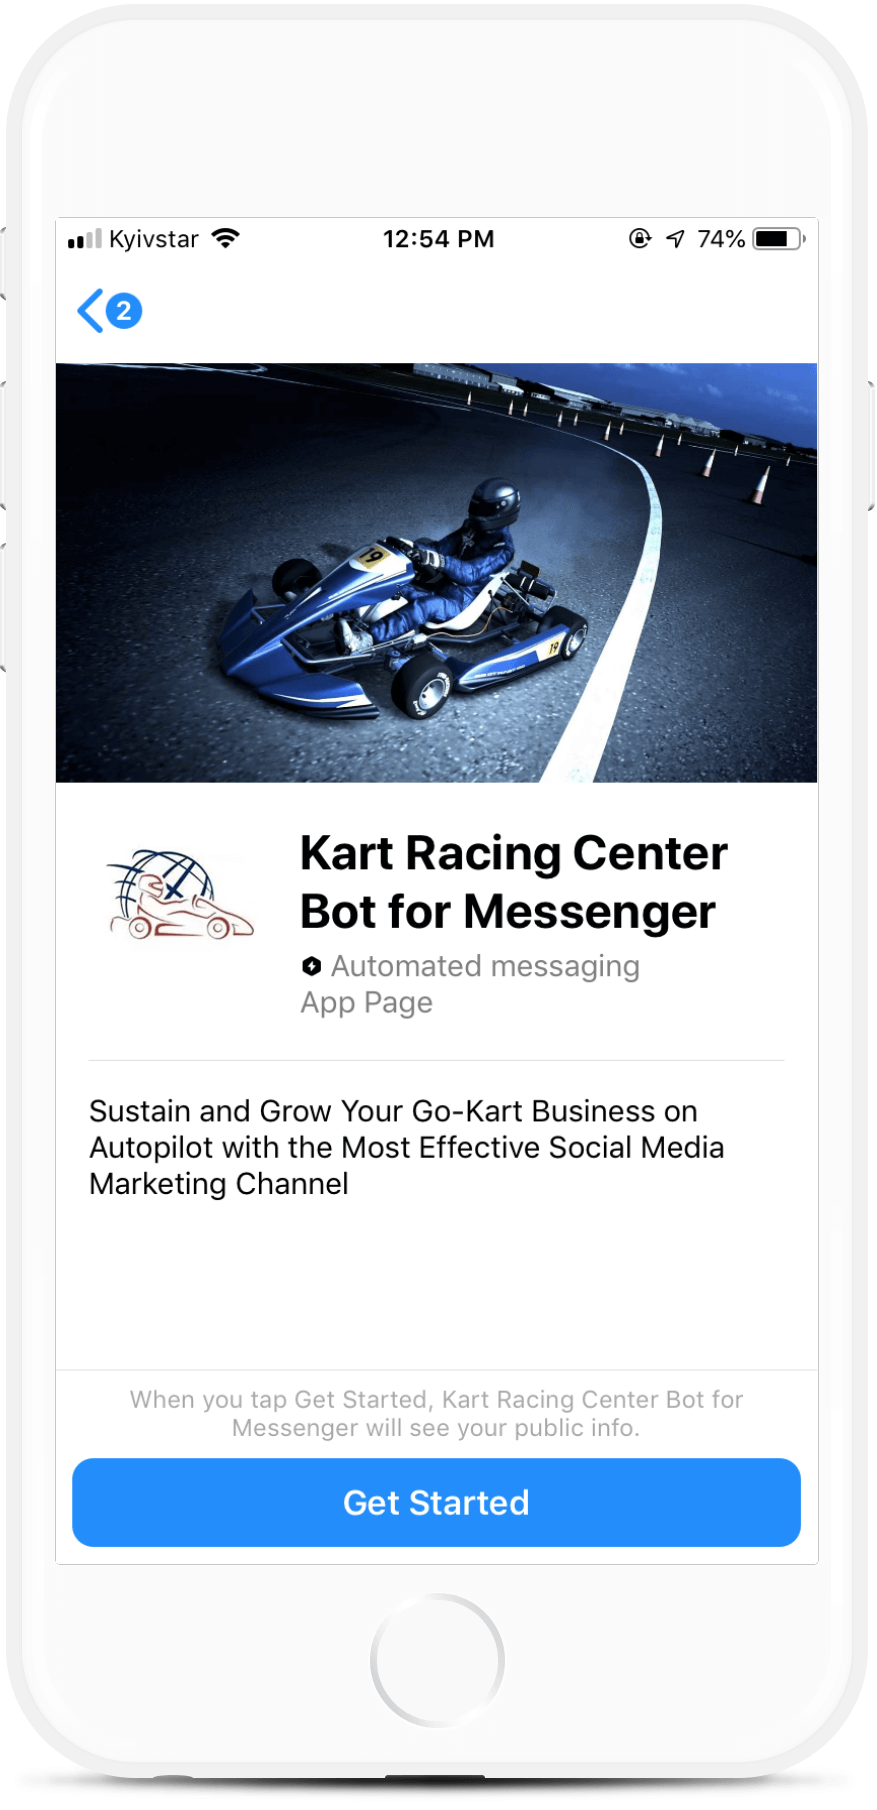 Kart Racing Center Bot for Messenger